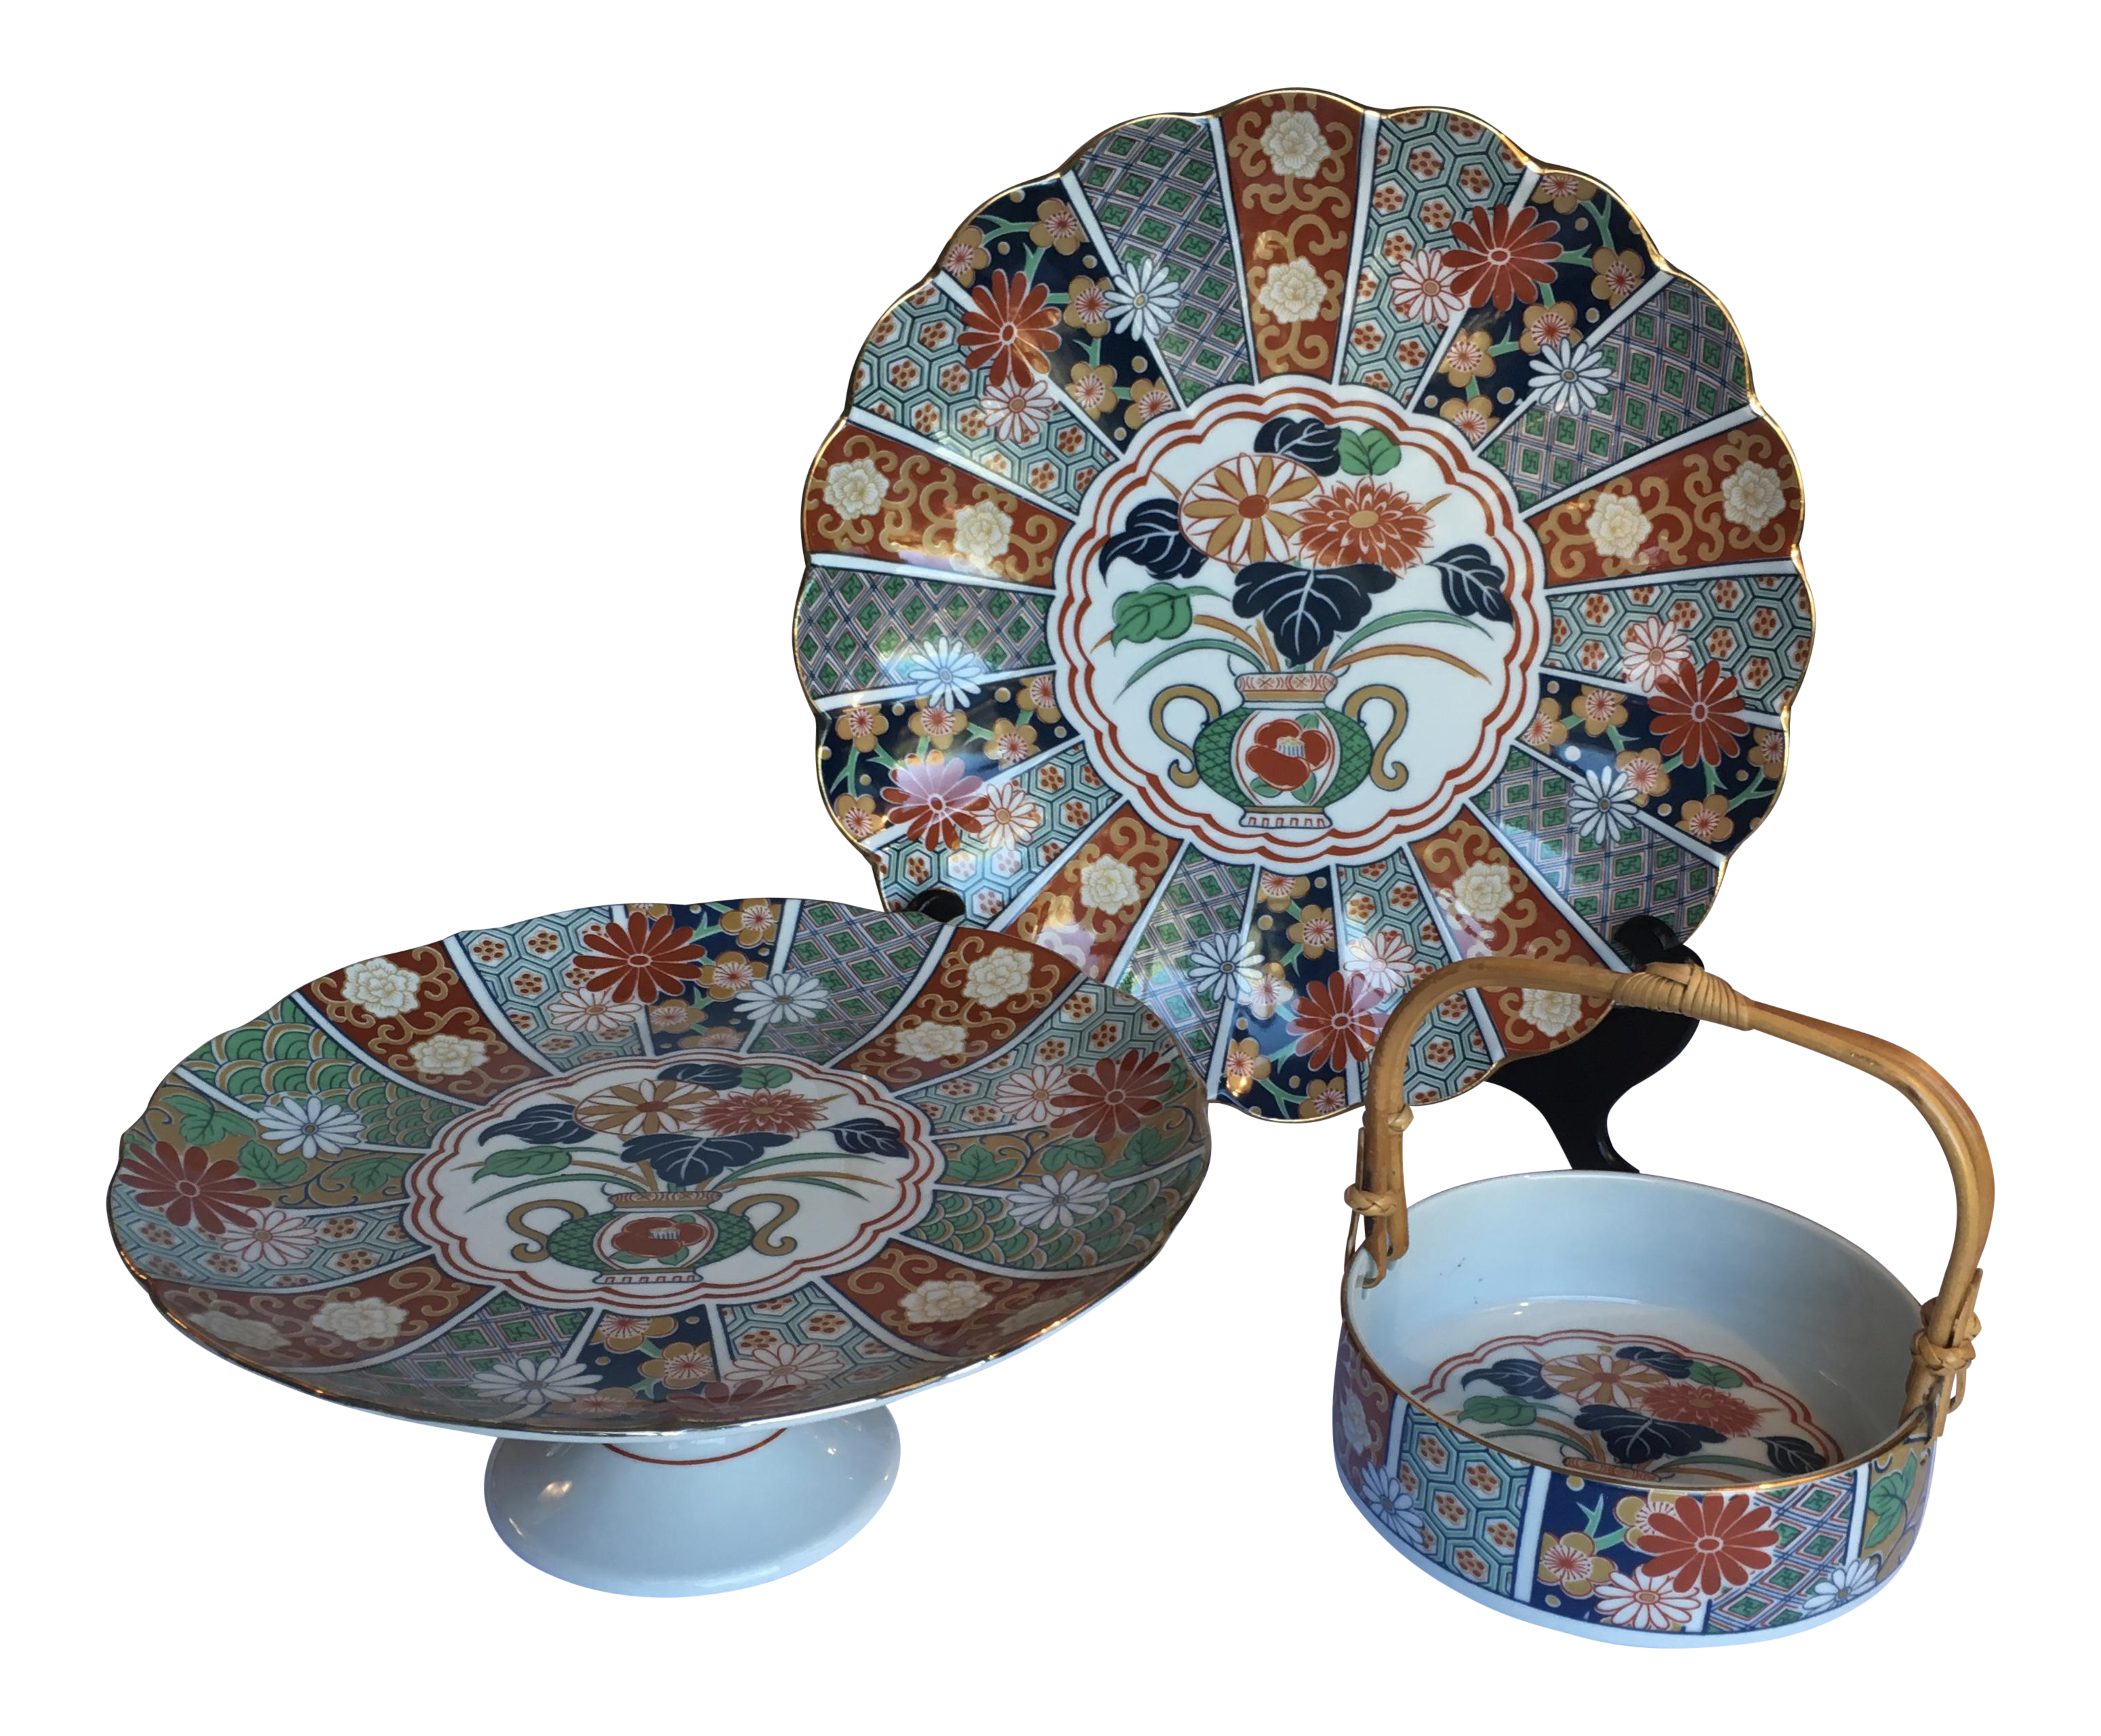 Japanese Imari Porcelain Serving Dishes - Set of 3  sc 1 st  Chairish & Japanese Imari Porcelain Serving Dishes - Set of 3 | Chairish